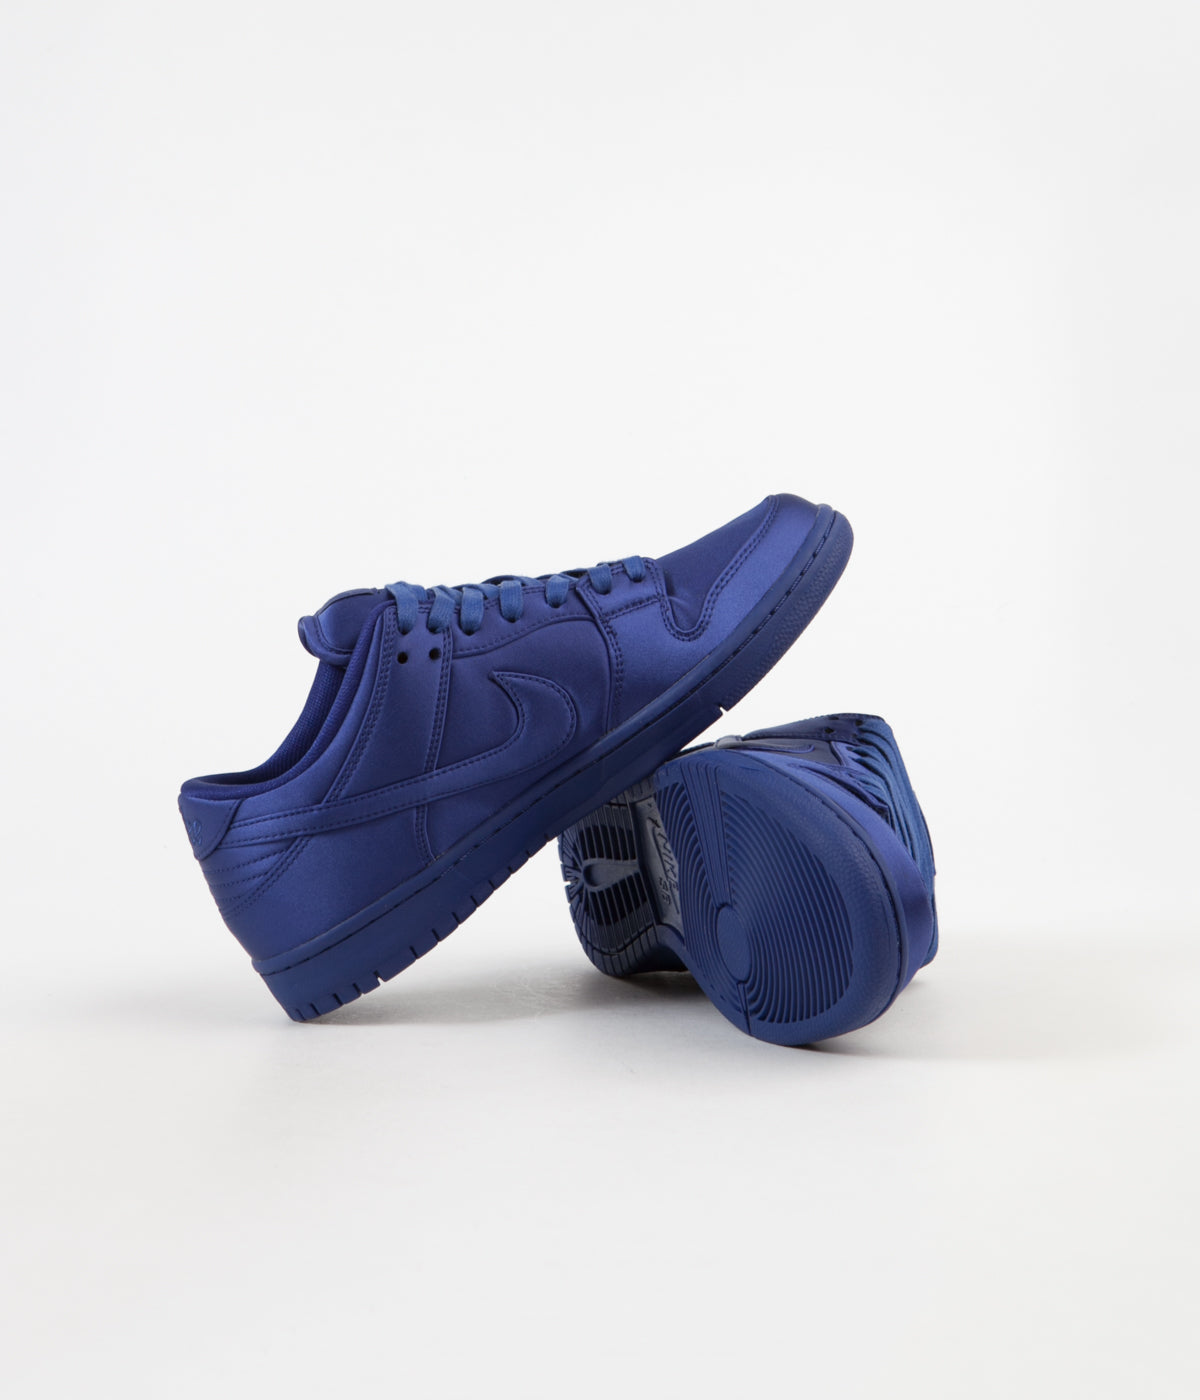 big sale db4b9 f1690 ... Nike SB x NBA Dunk Low TRD Shoes - Deep Royal Blue / Deep Royal Blue ...